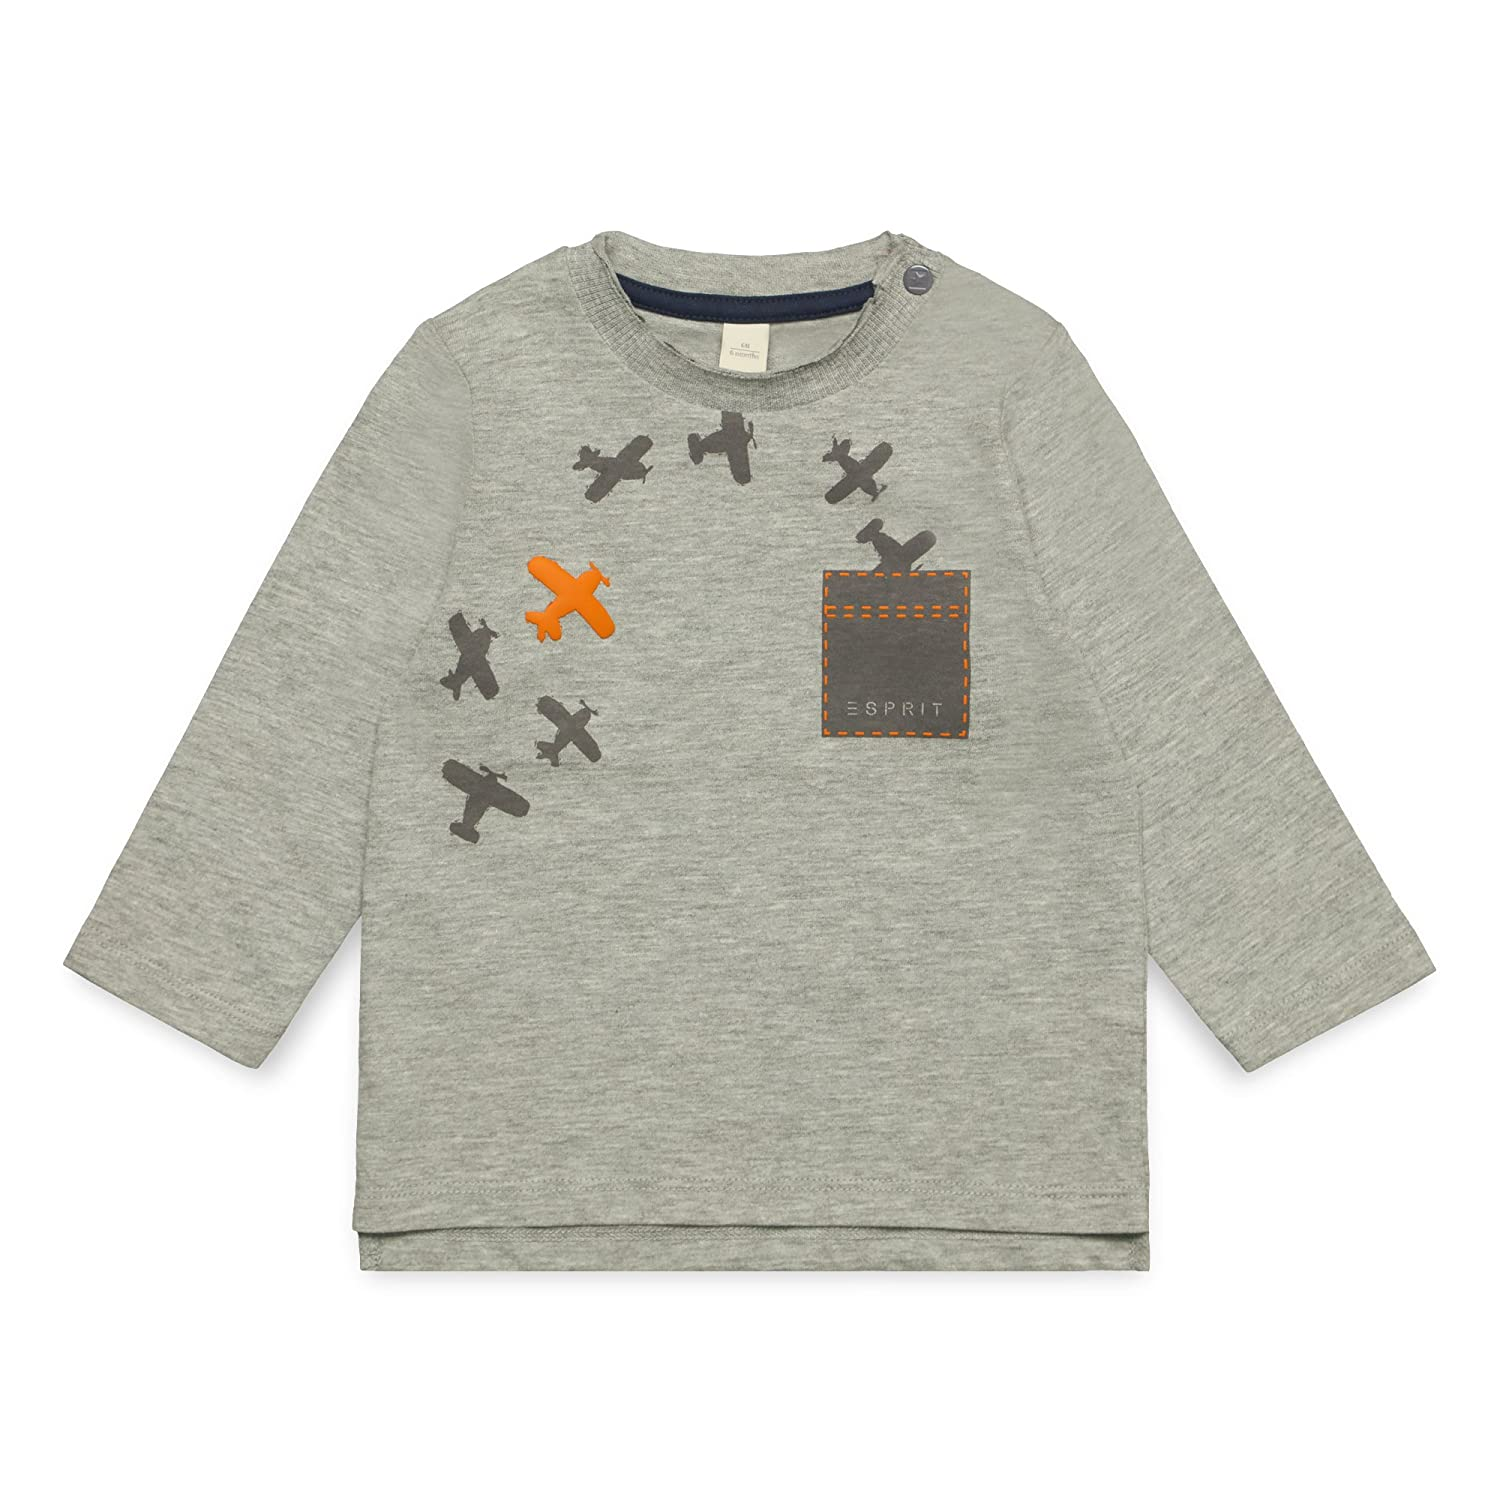 ESPRIT Kids Tee-Shirt for Boy, T Bimbo RM1008209